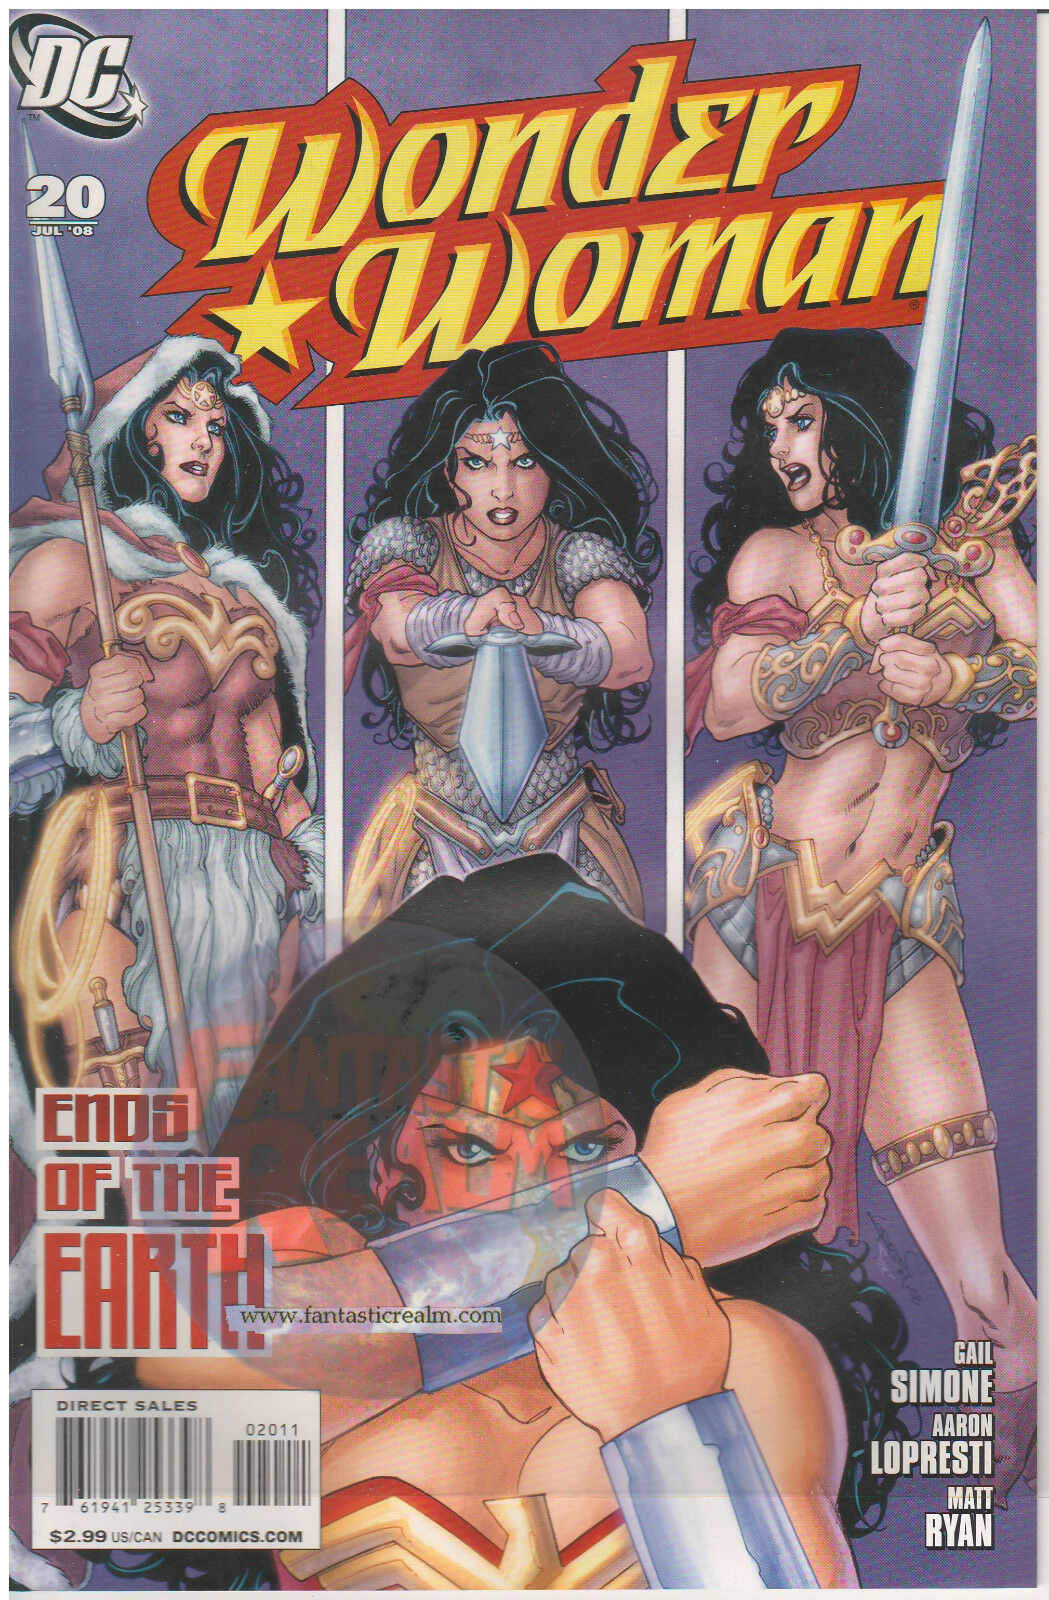 WONDER WOMAN #19 & 20 DC COMICS